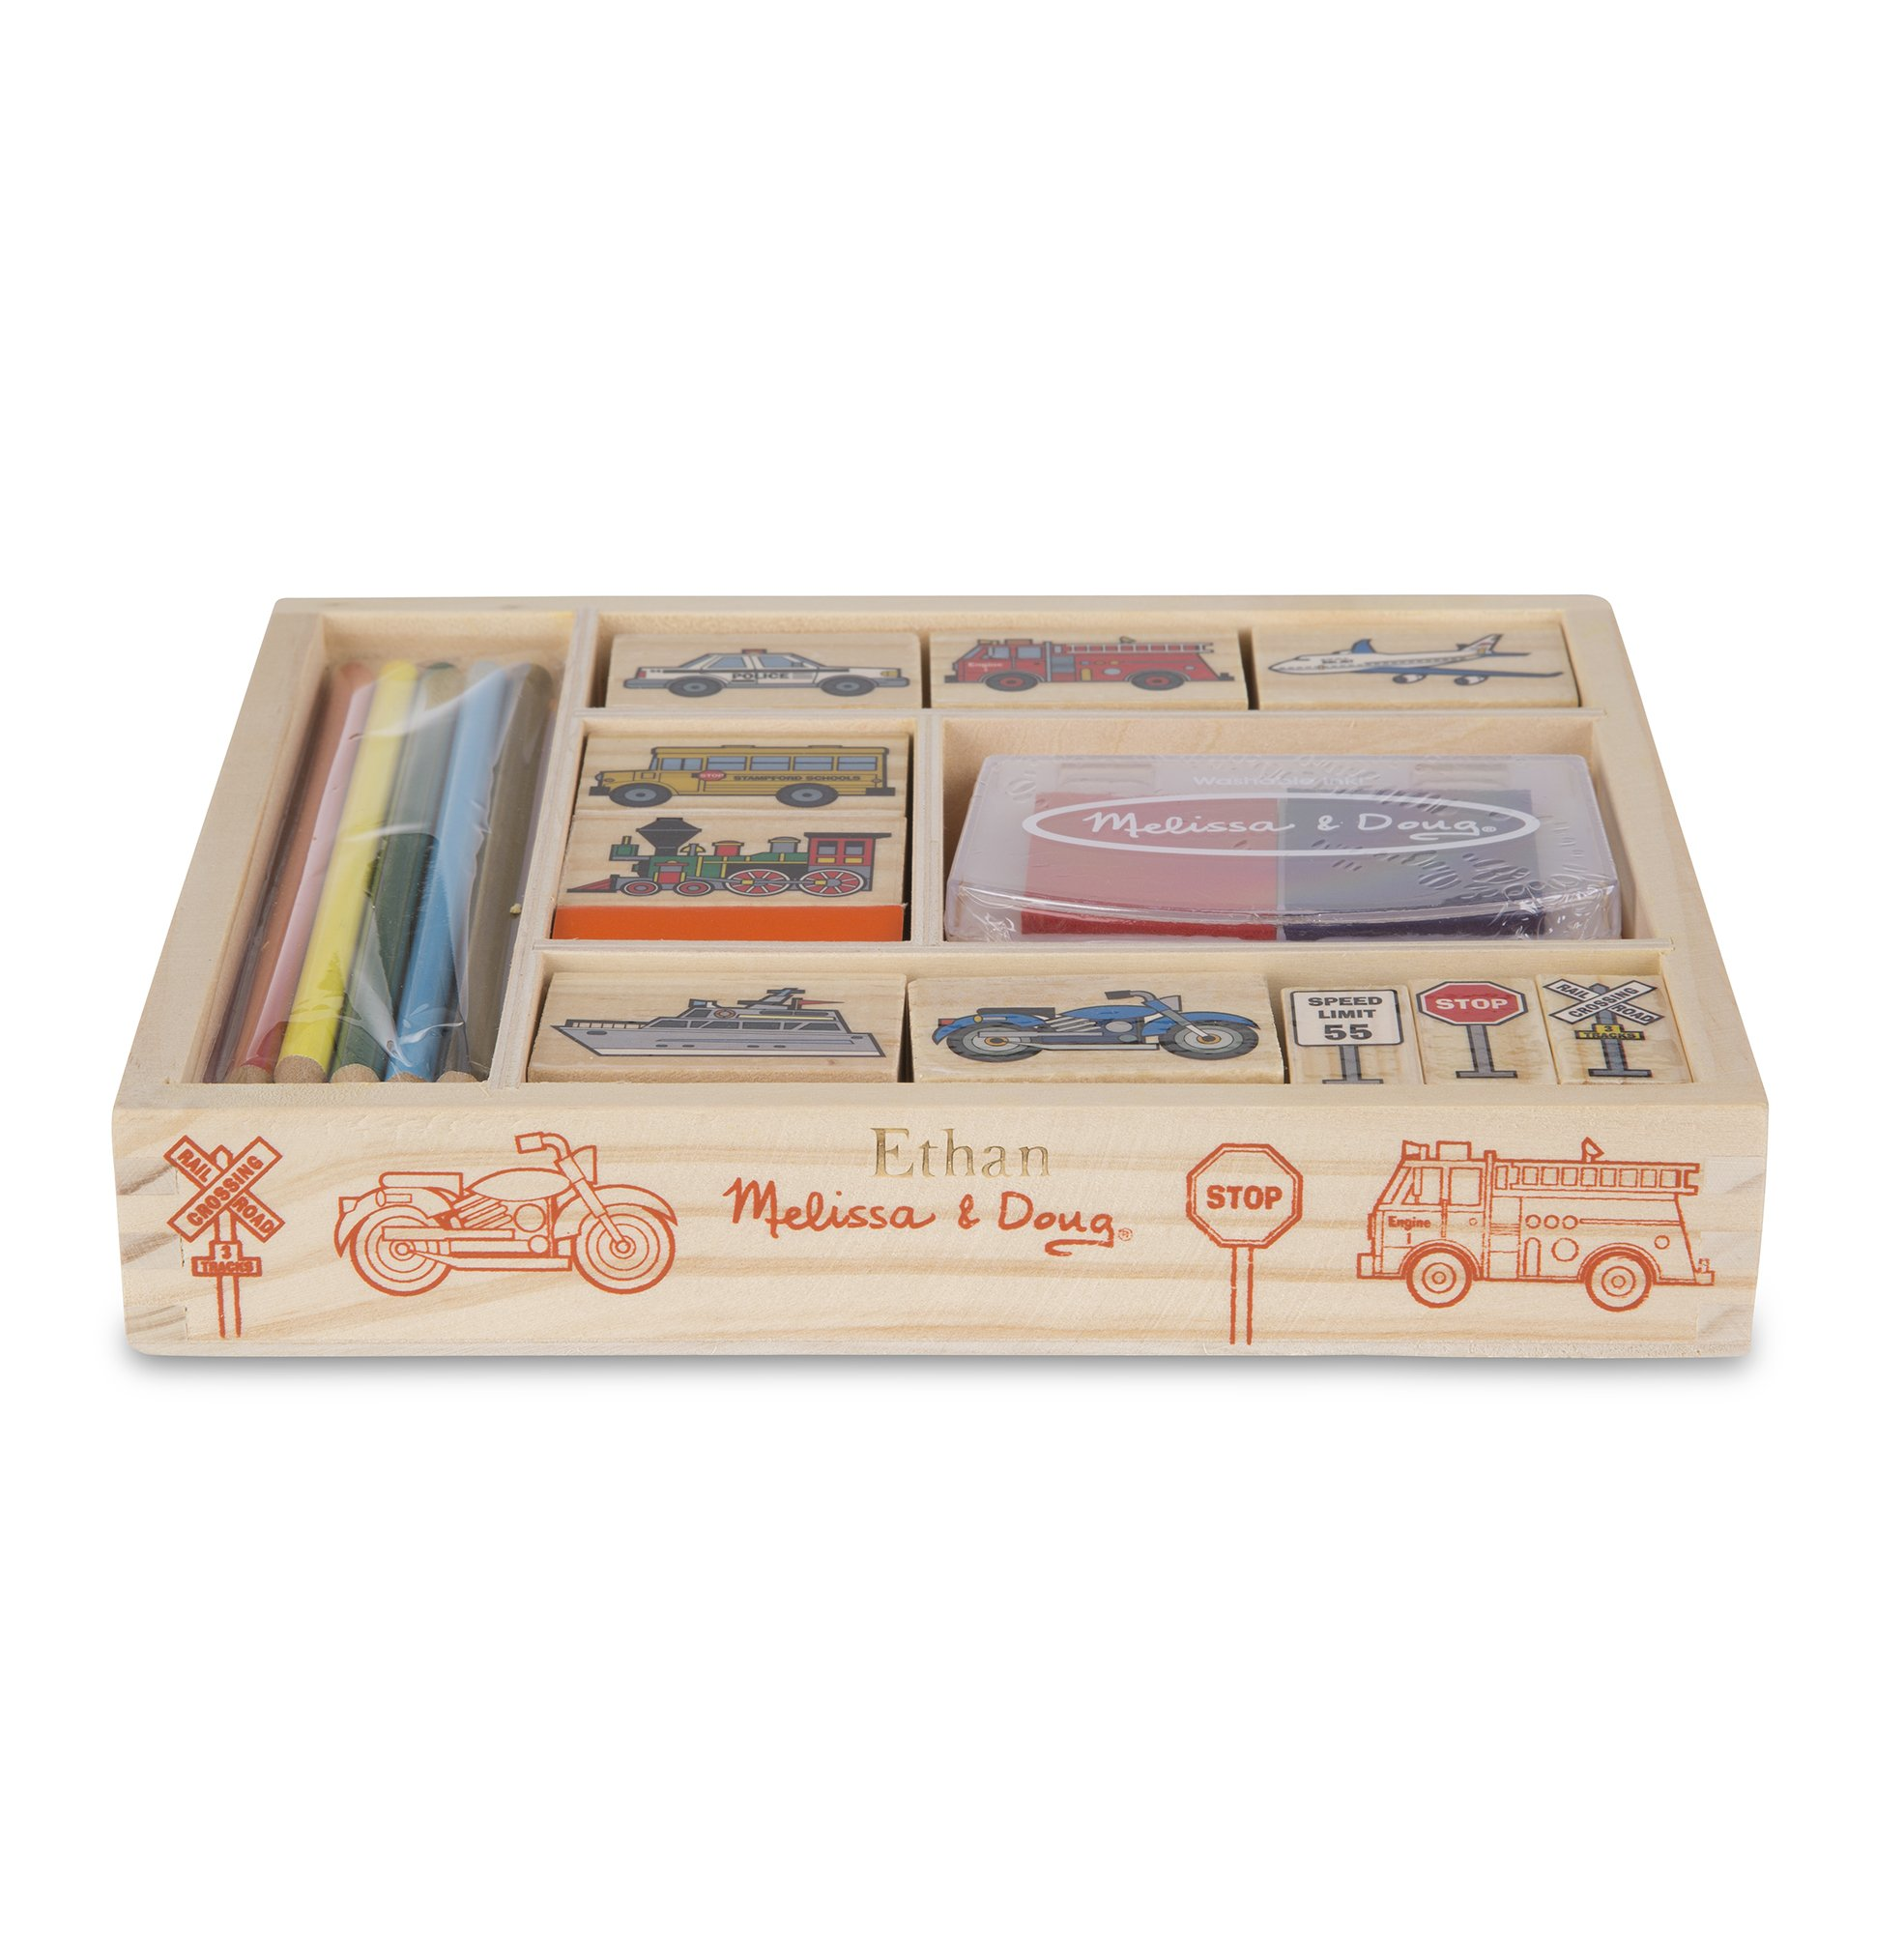 Melissa & Doug Personalized Vehicles 10 Stamps, 5 Pencils, 2-Color Wooden Pad